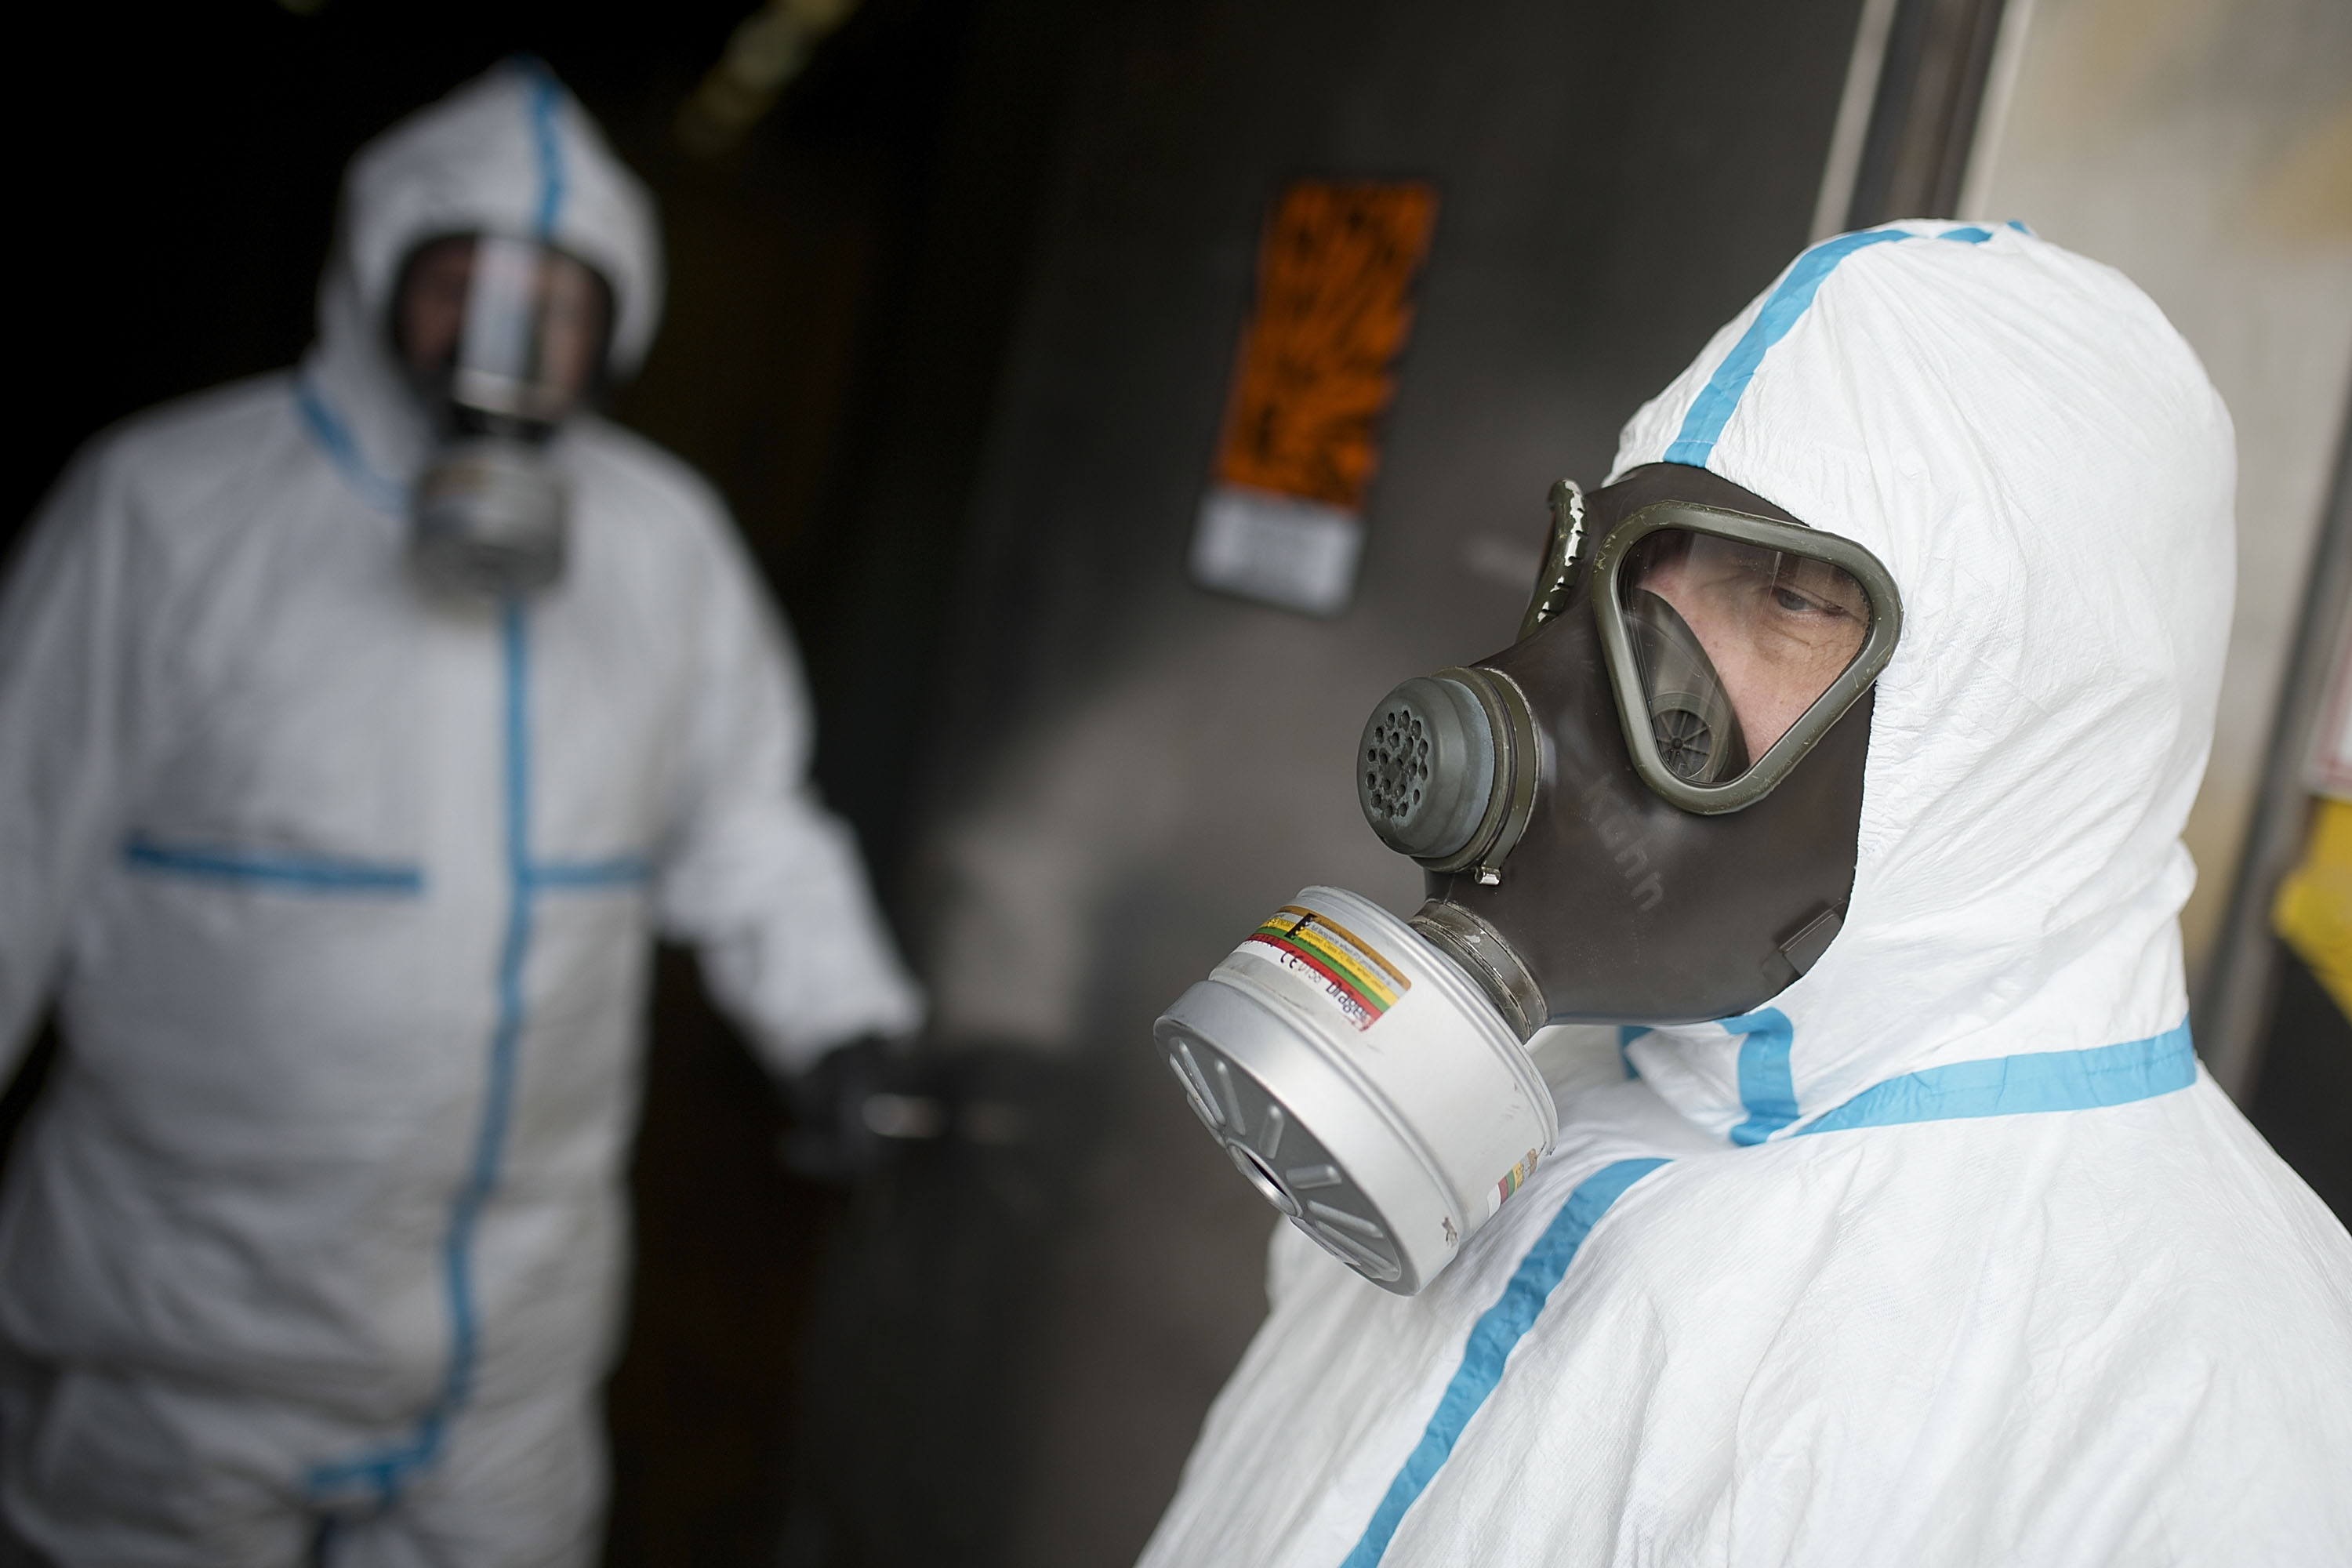 A worker stands next to a machine that will be used to destroy chemical weapons from Syria during a press day at the GEKA facility on March 5, 2014 in Munster, Germany. GEKA is federally-funded and its sole function is the destruction of chemical weapons from military arsenals. Syria agreed to give up its chemical weapons last August and disposal, which is already underway on an American ship in the Mediterranean, is scheduled to be completed by June.